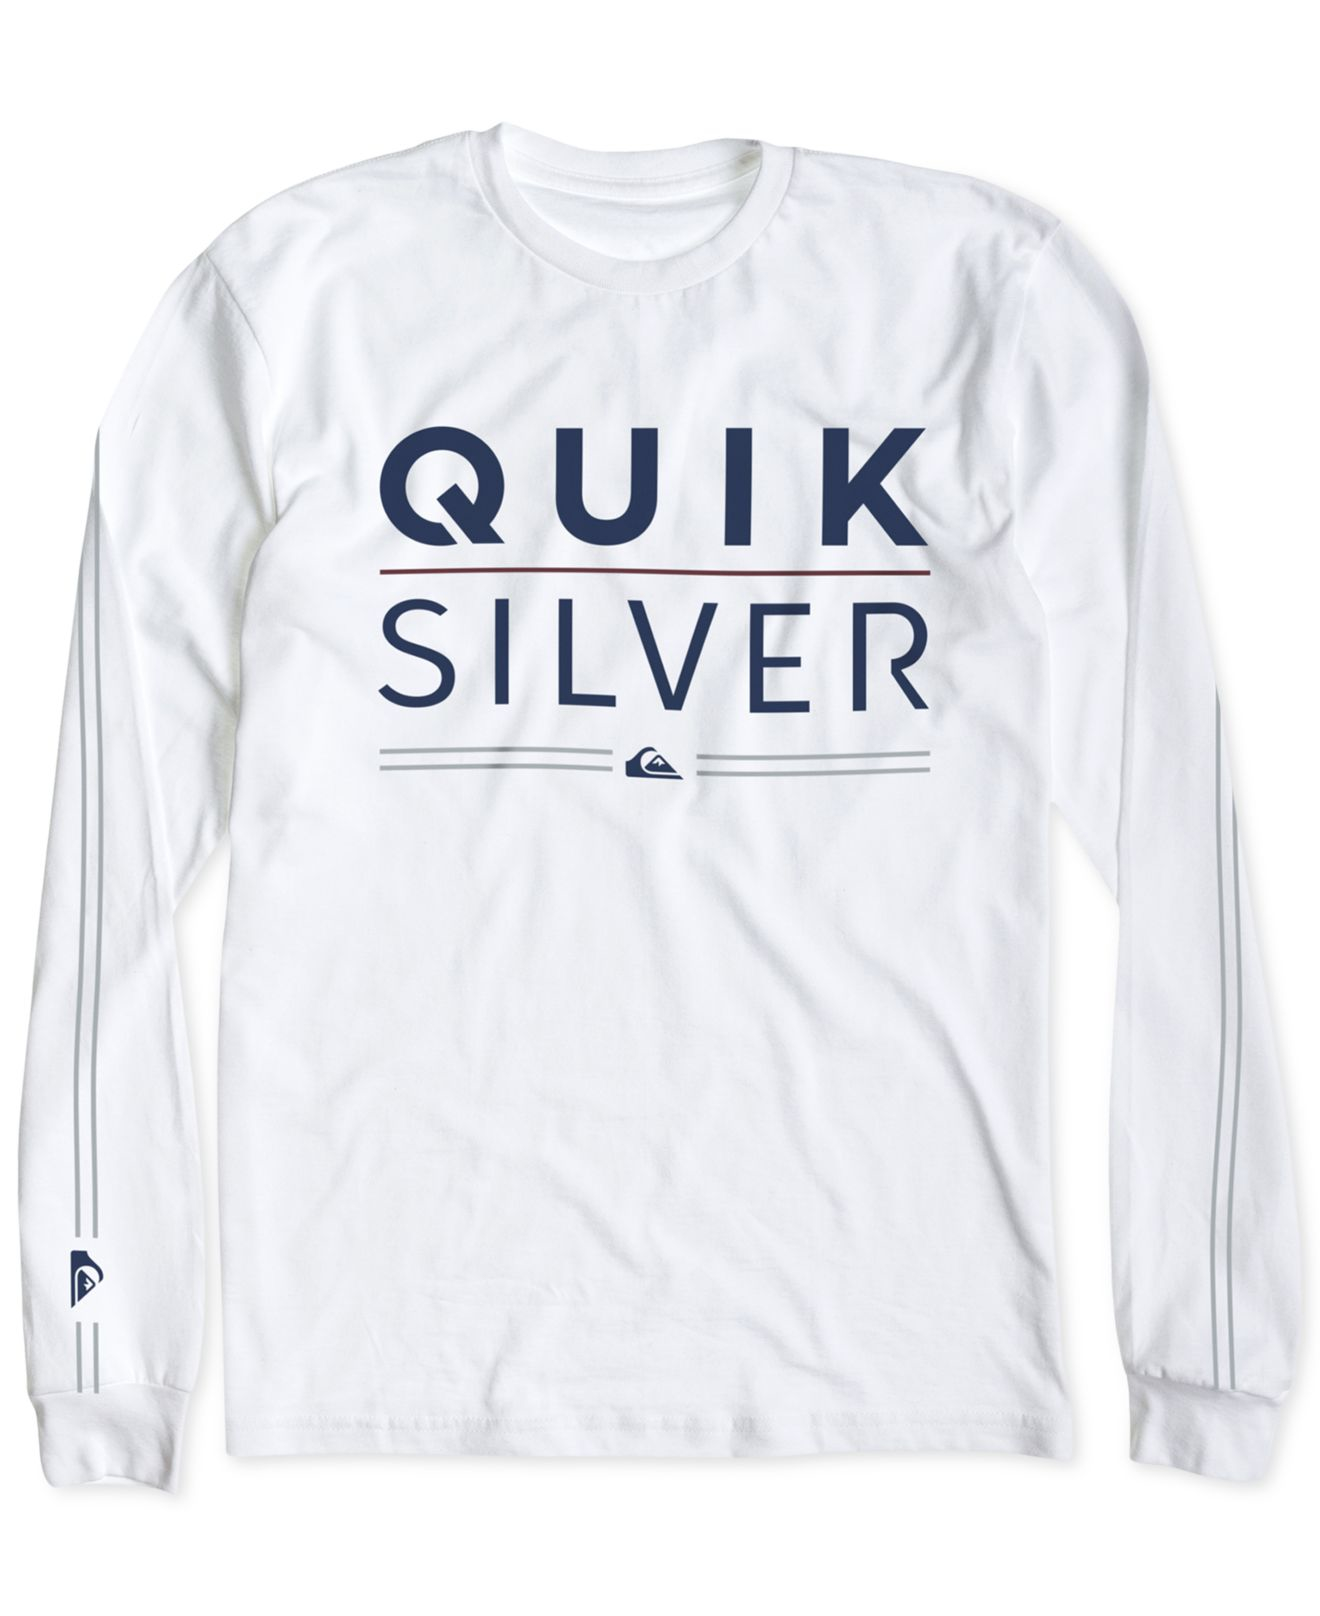 22781a1fec51 Quiksilver Men's Fully Stacked Graphic-print Logo Long-sleeve T ...